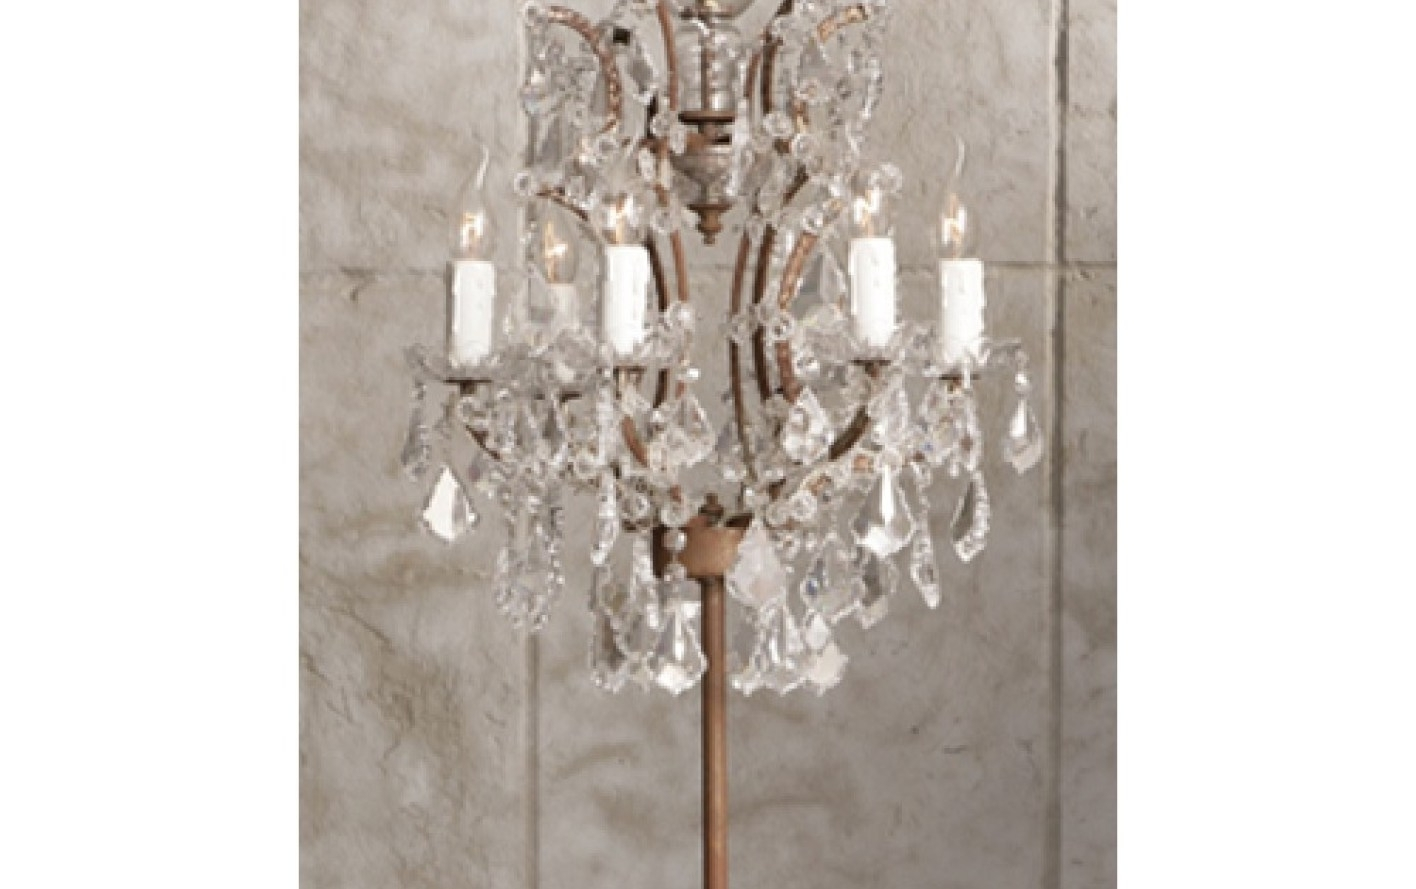 Well Known Small Crystal Chandelier Table Lamps For Chandelier : Xstunning Crystal Chandelier Table Lamp Suppliers (View 17 of 20)